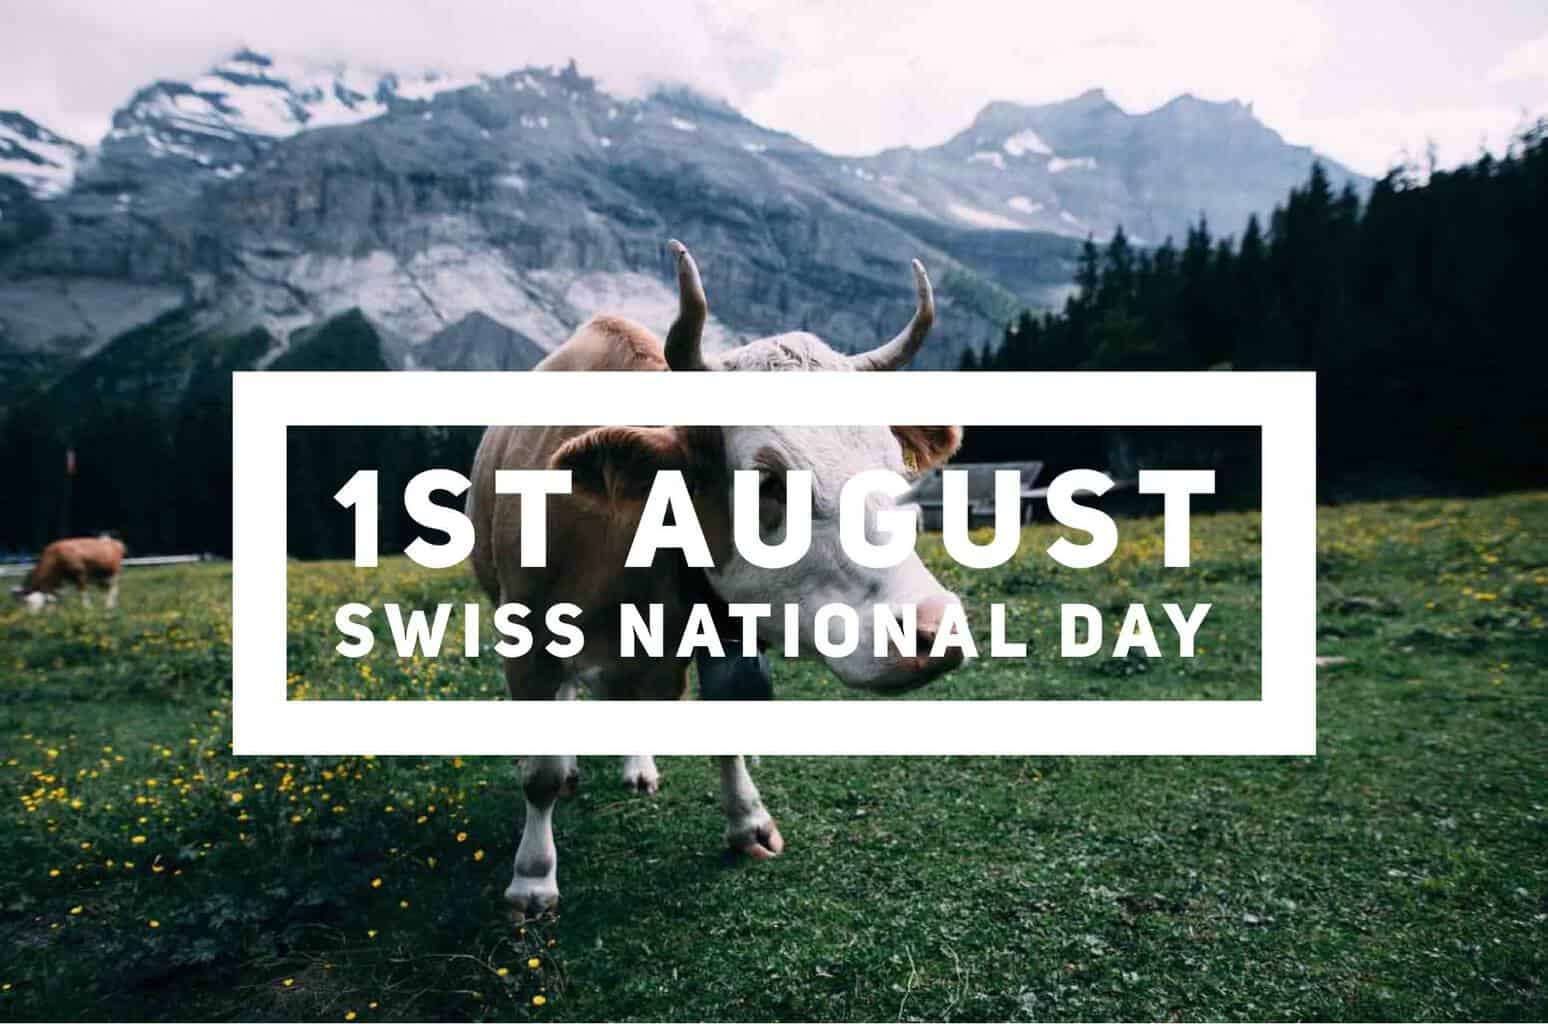 Celebrate 1st August Swiss National Day in Style